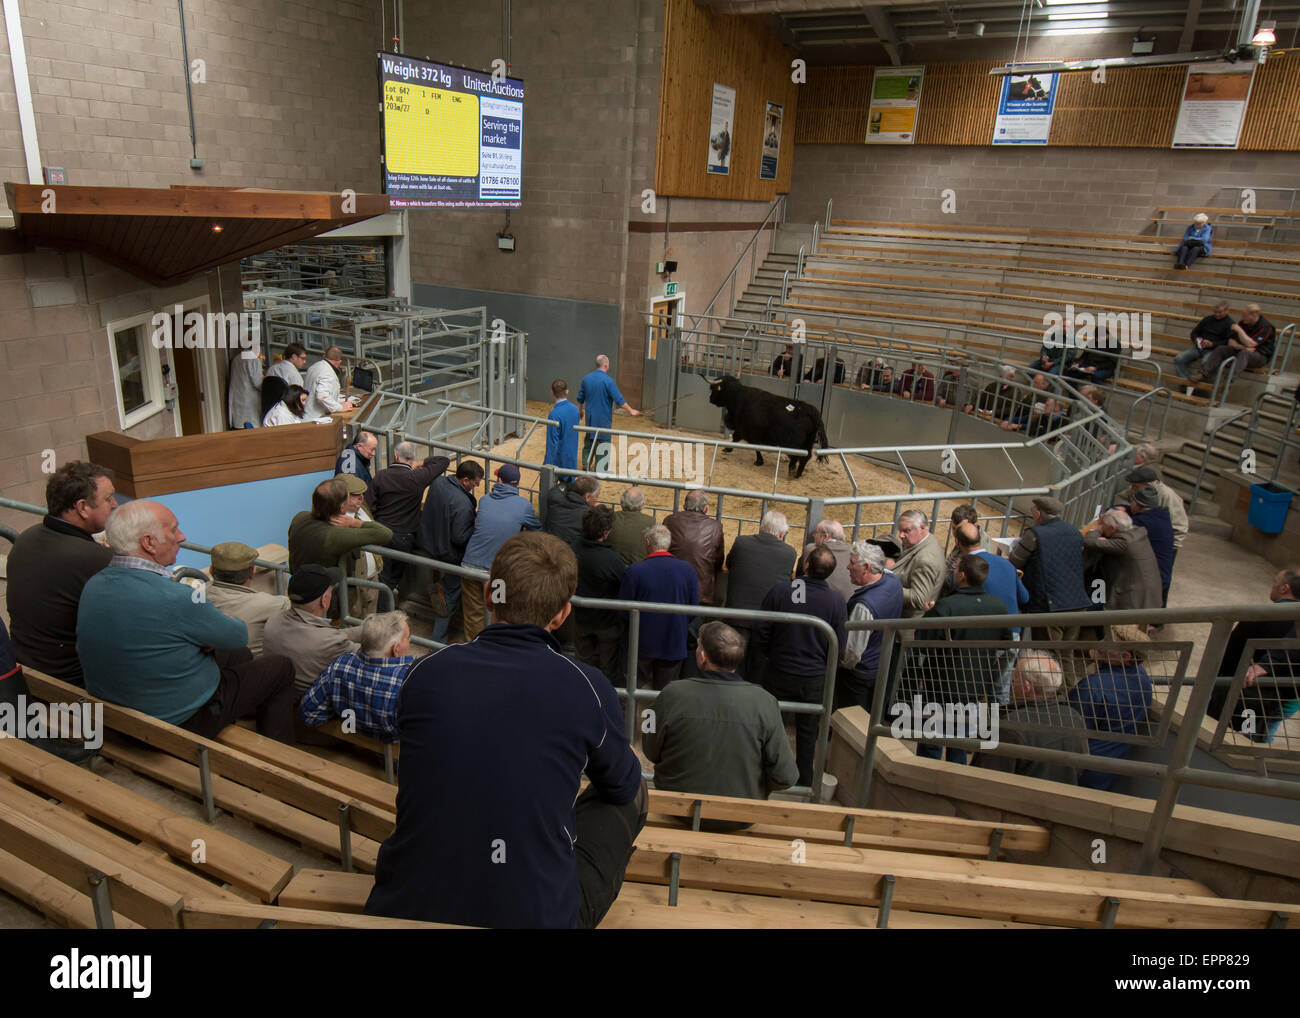 Sale of cattle at United Auctions, Stirling, Scotland, UK - Stock Image